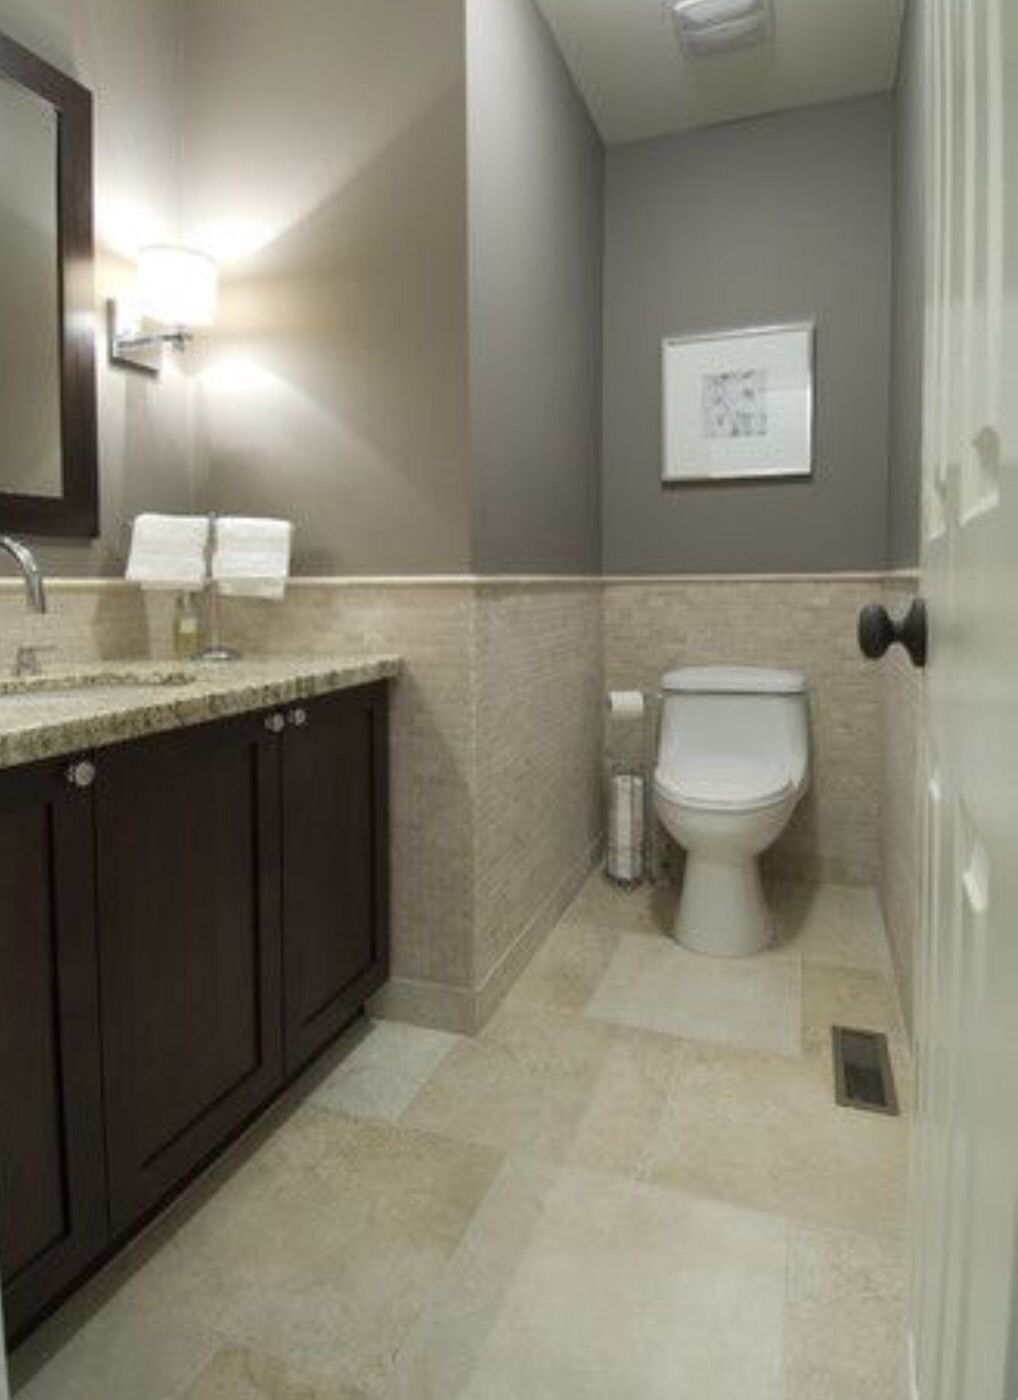 Half Tile Wall Around Toilet A Must Have In Small Spaces Beige Tile Bathroom Bathroom Color Schemes Bathroom Colors